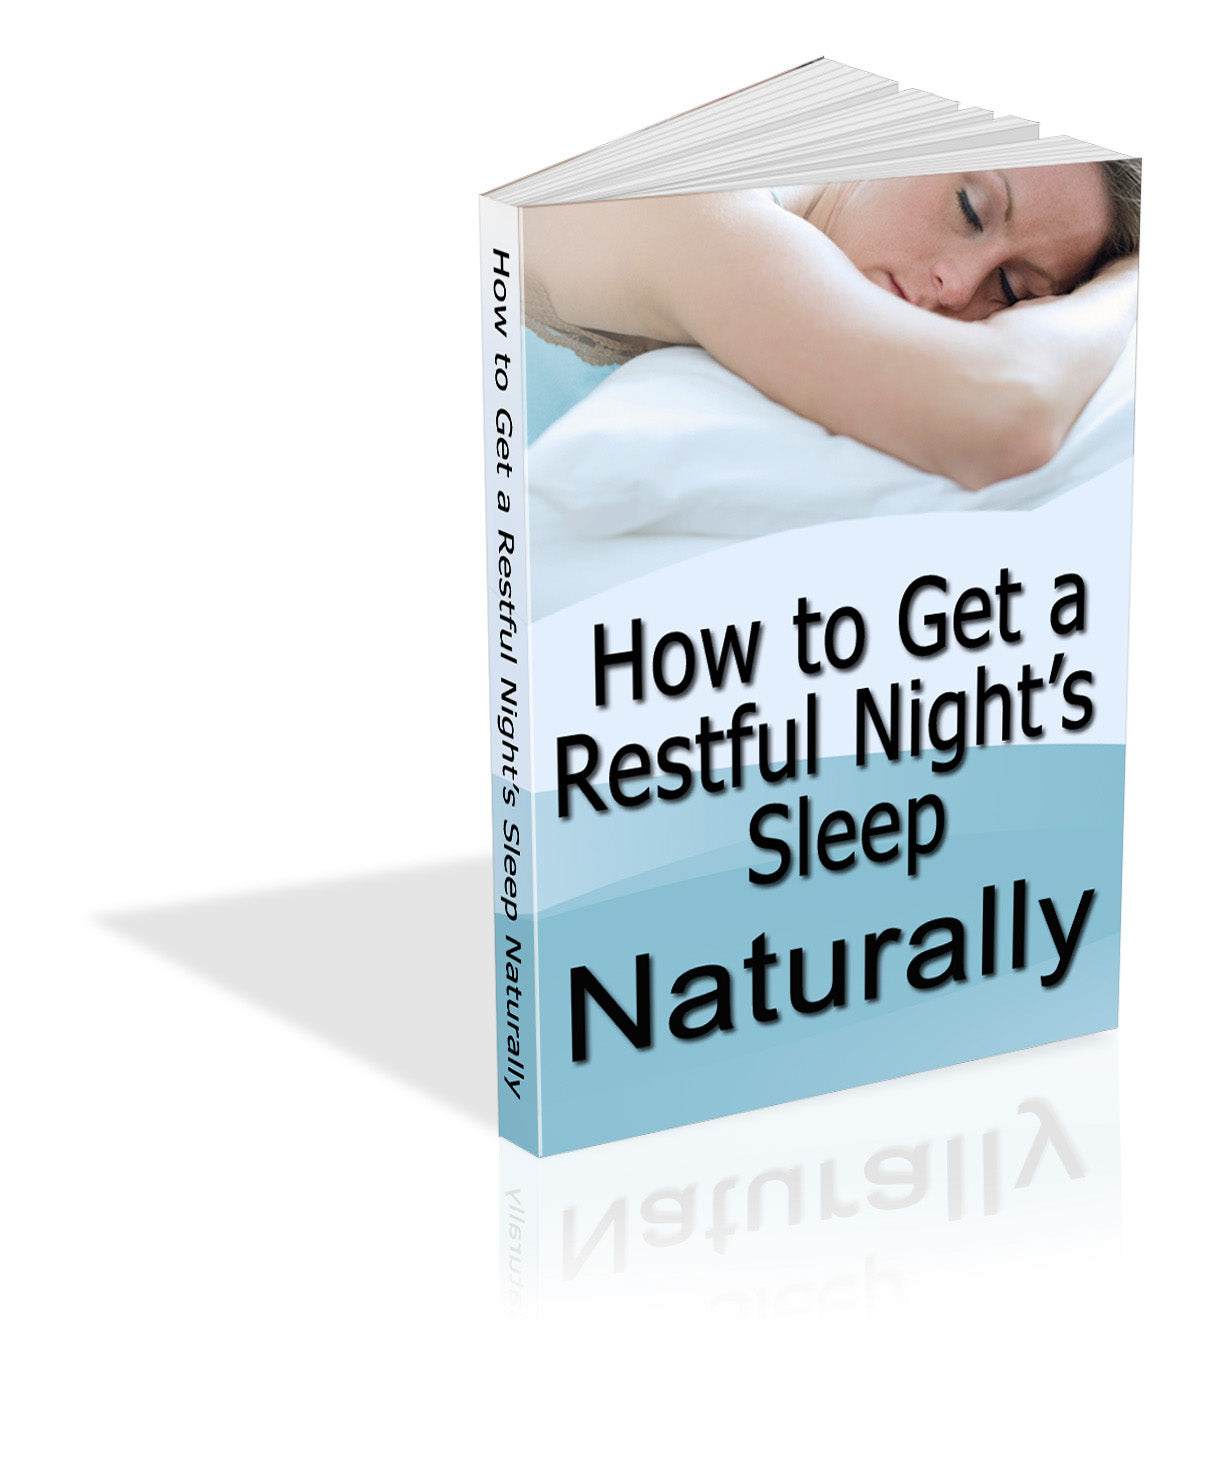 Tart Cherry Sleep - How to Get a Restful Night's Sleep Naturally - traversebayfarms